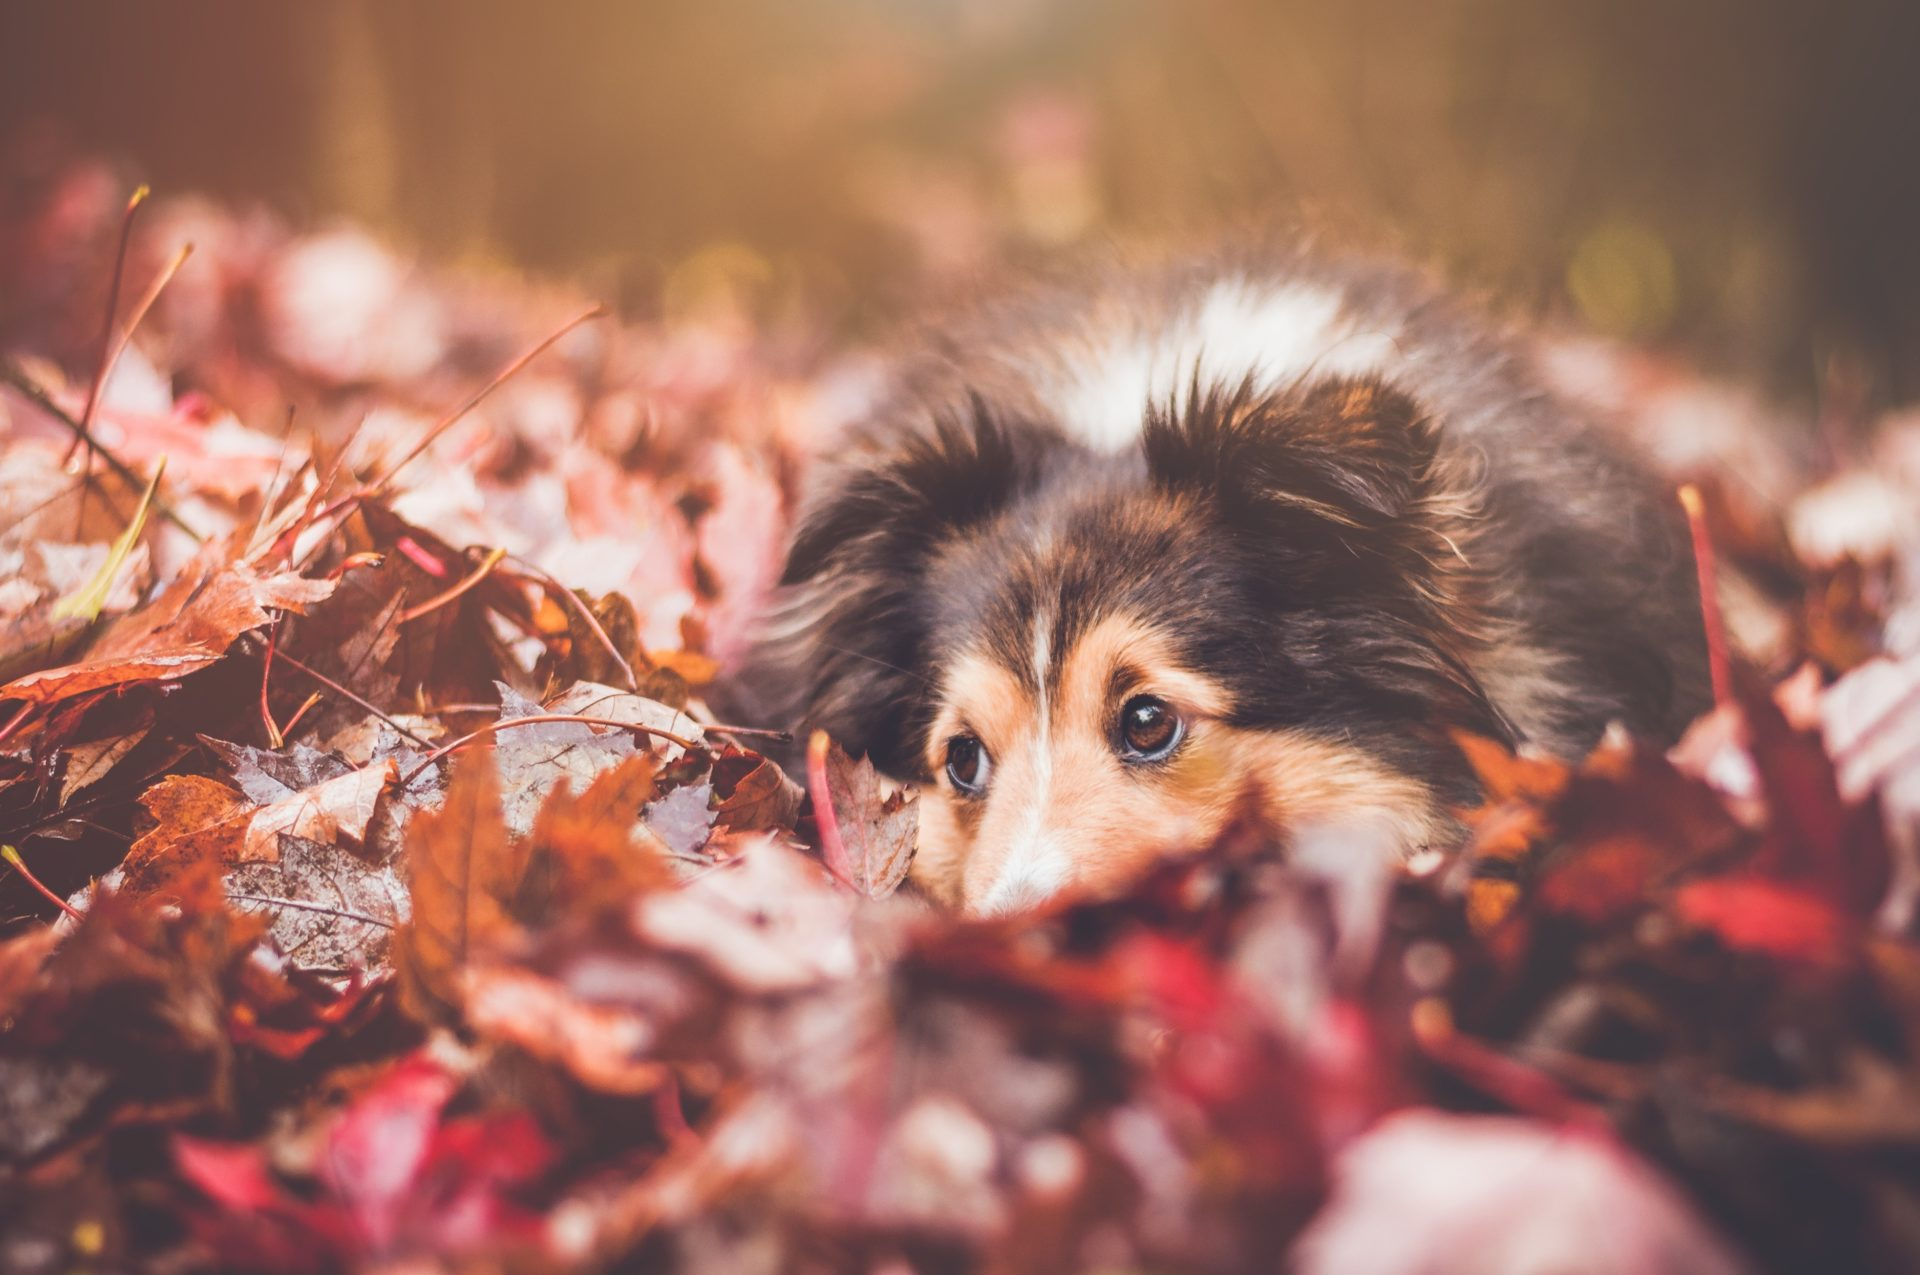 Dog in leaves in Autumn